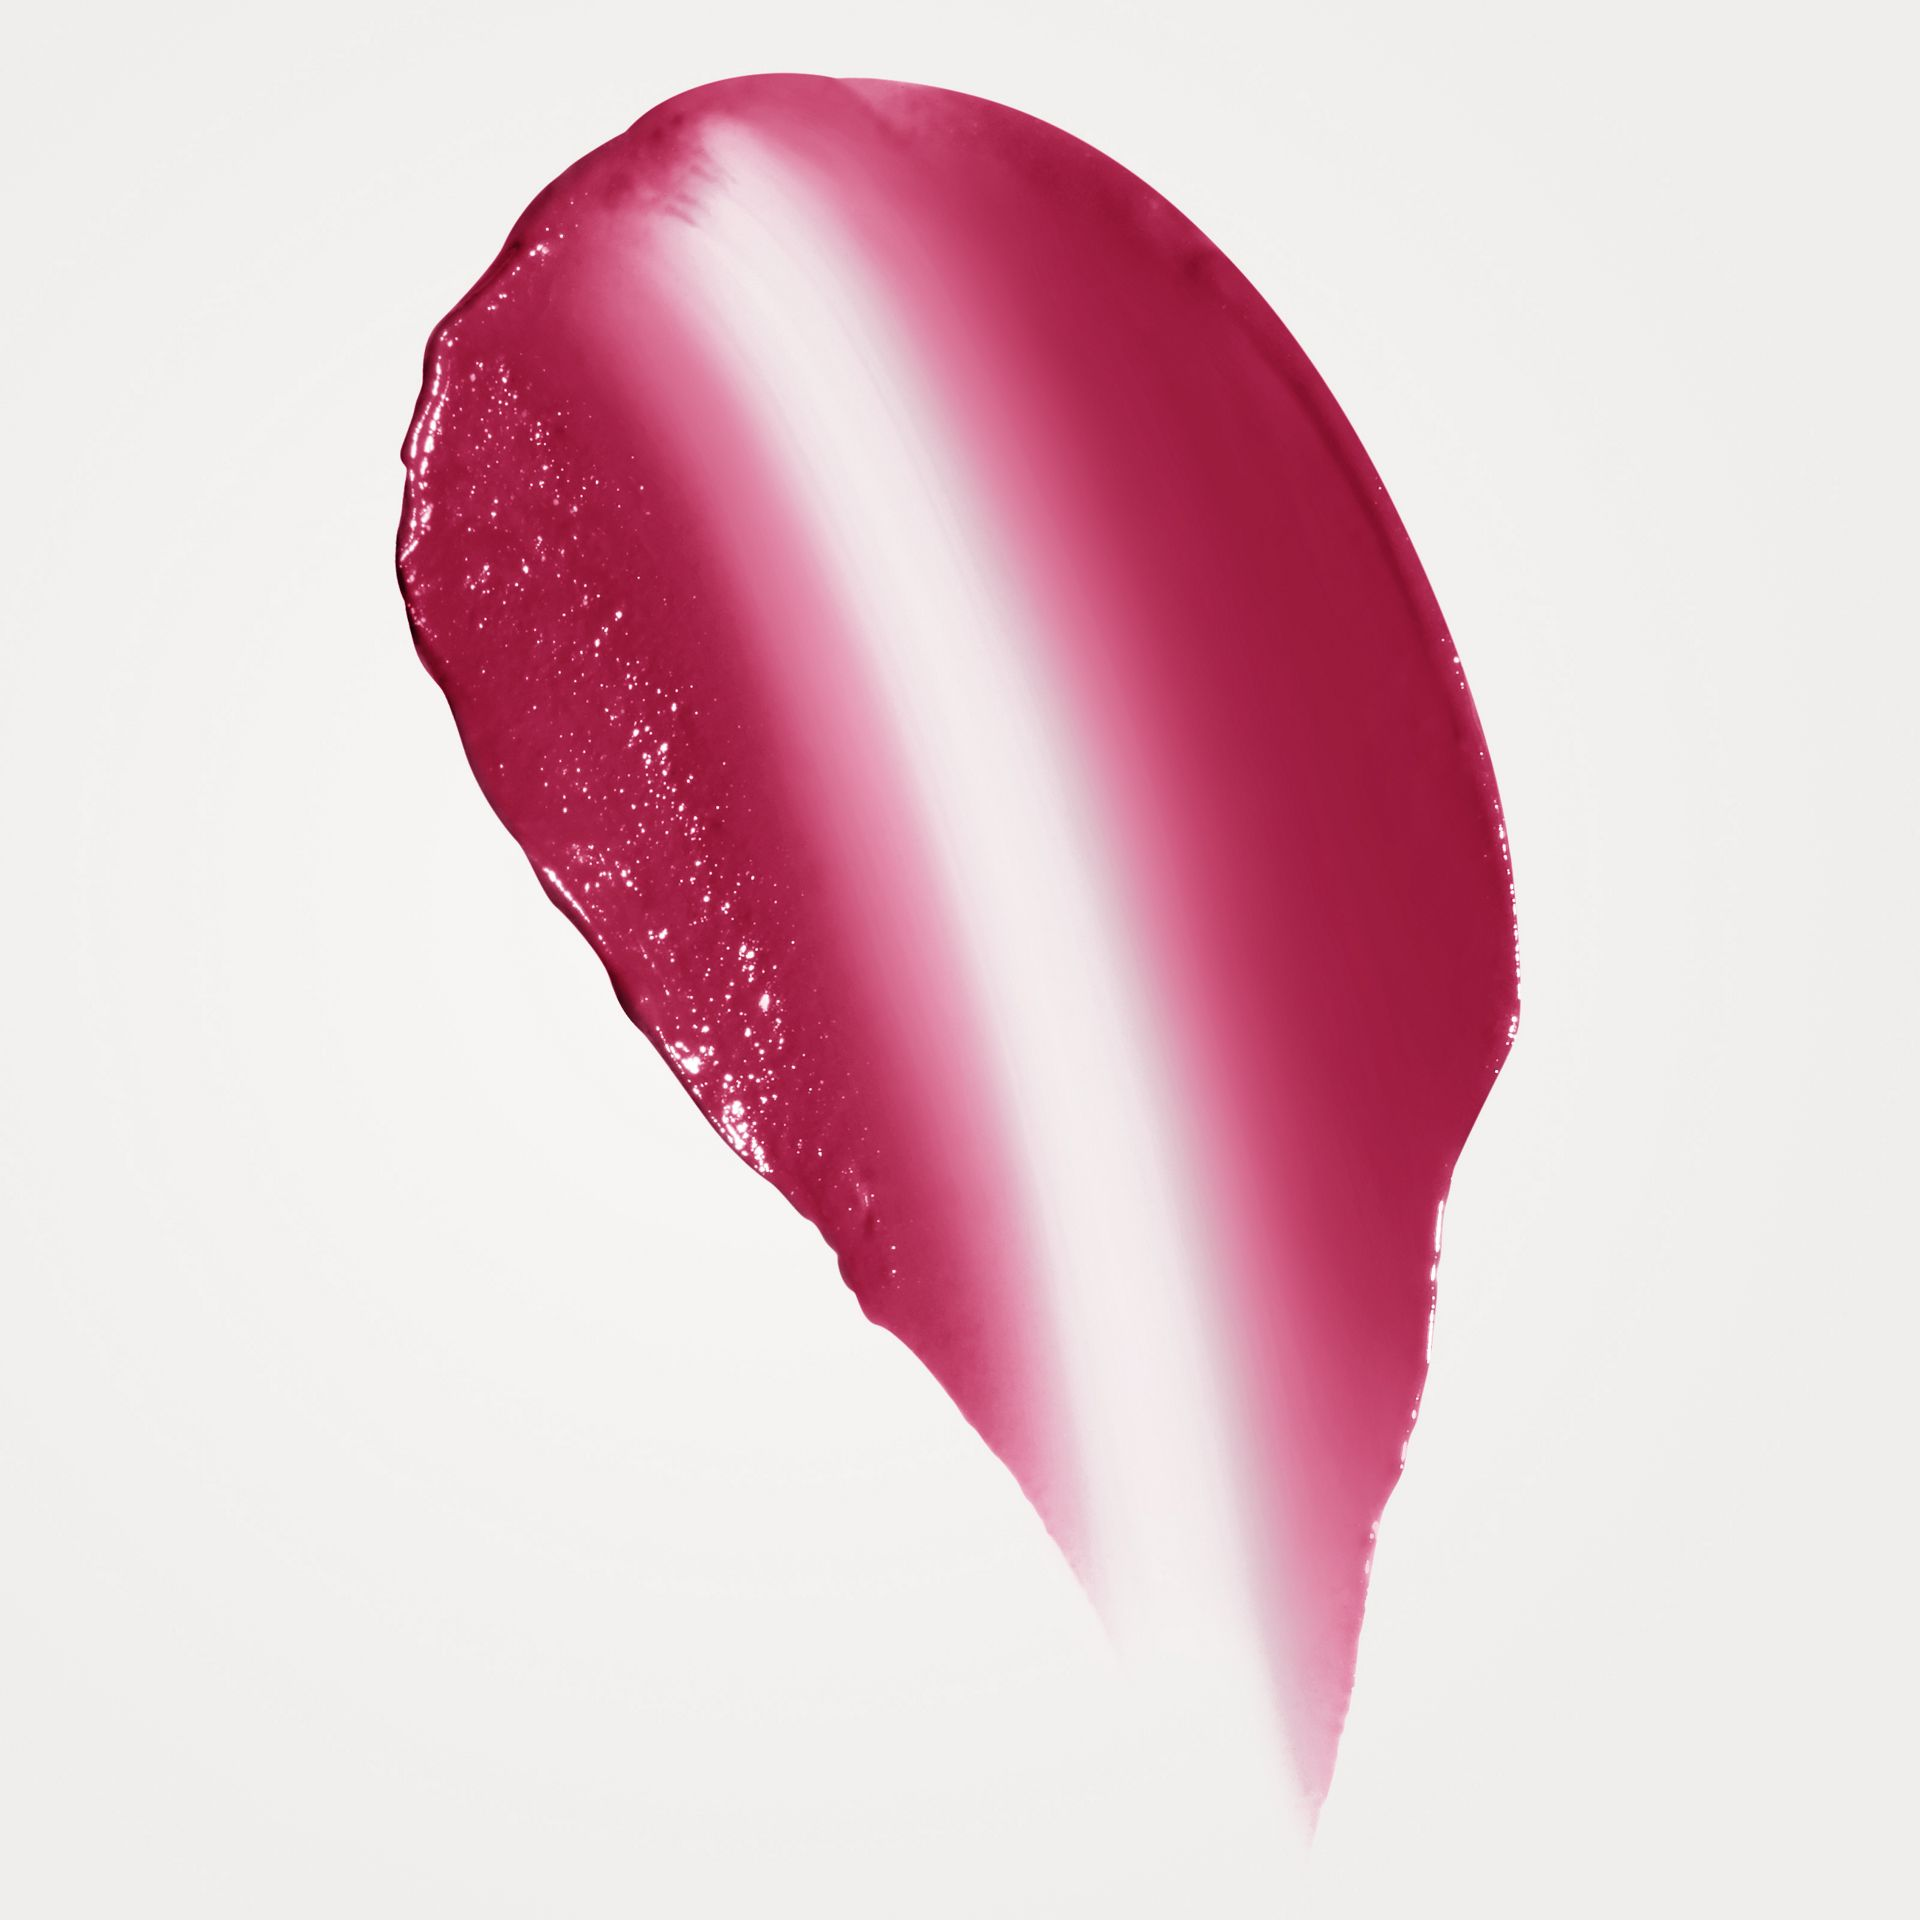 Burberry Kisses Sheer - Boysenberry No.289 - immagine della galleria 2